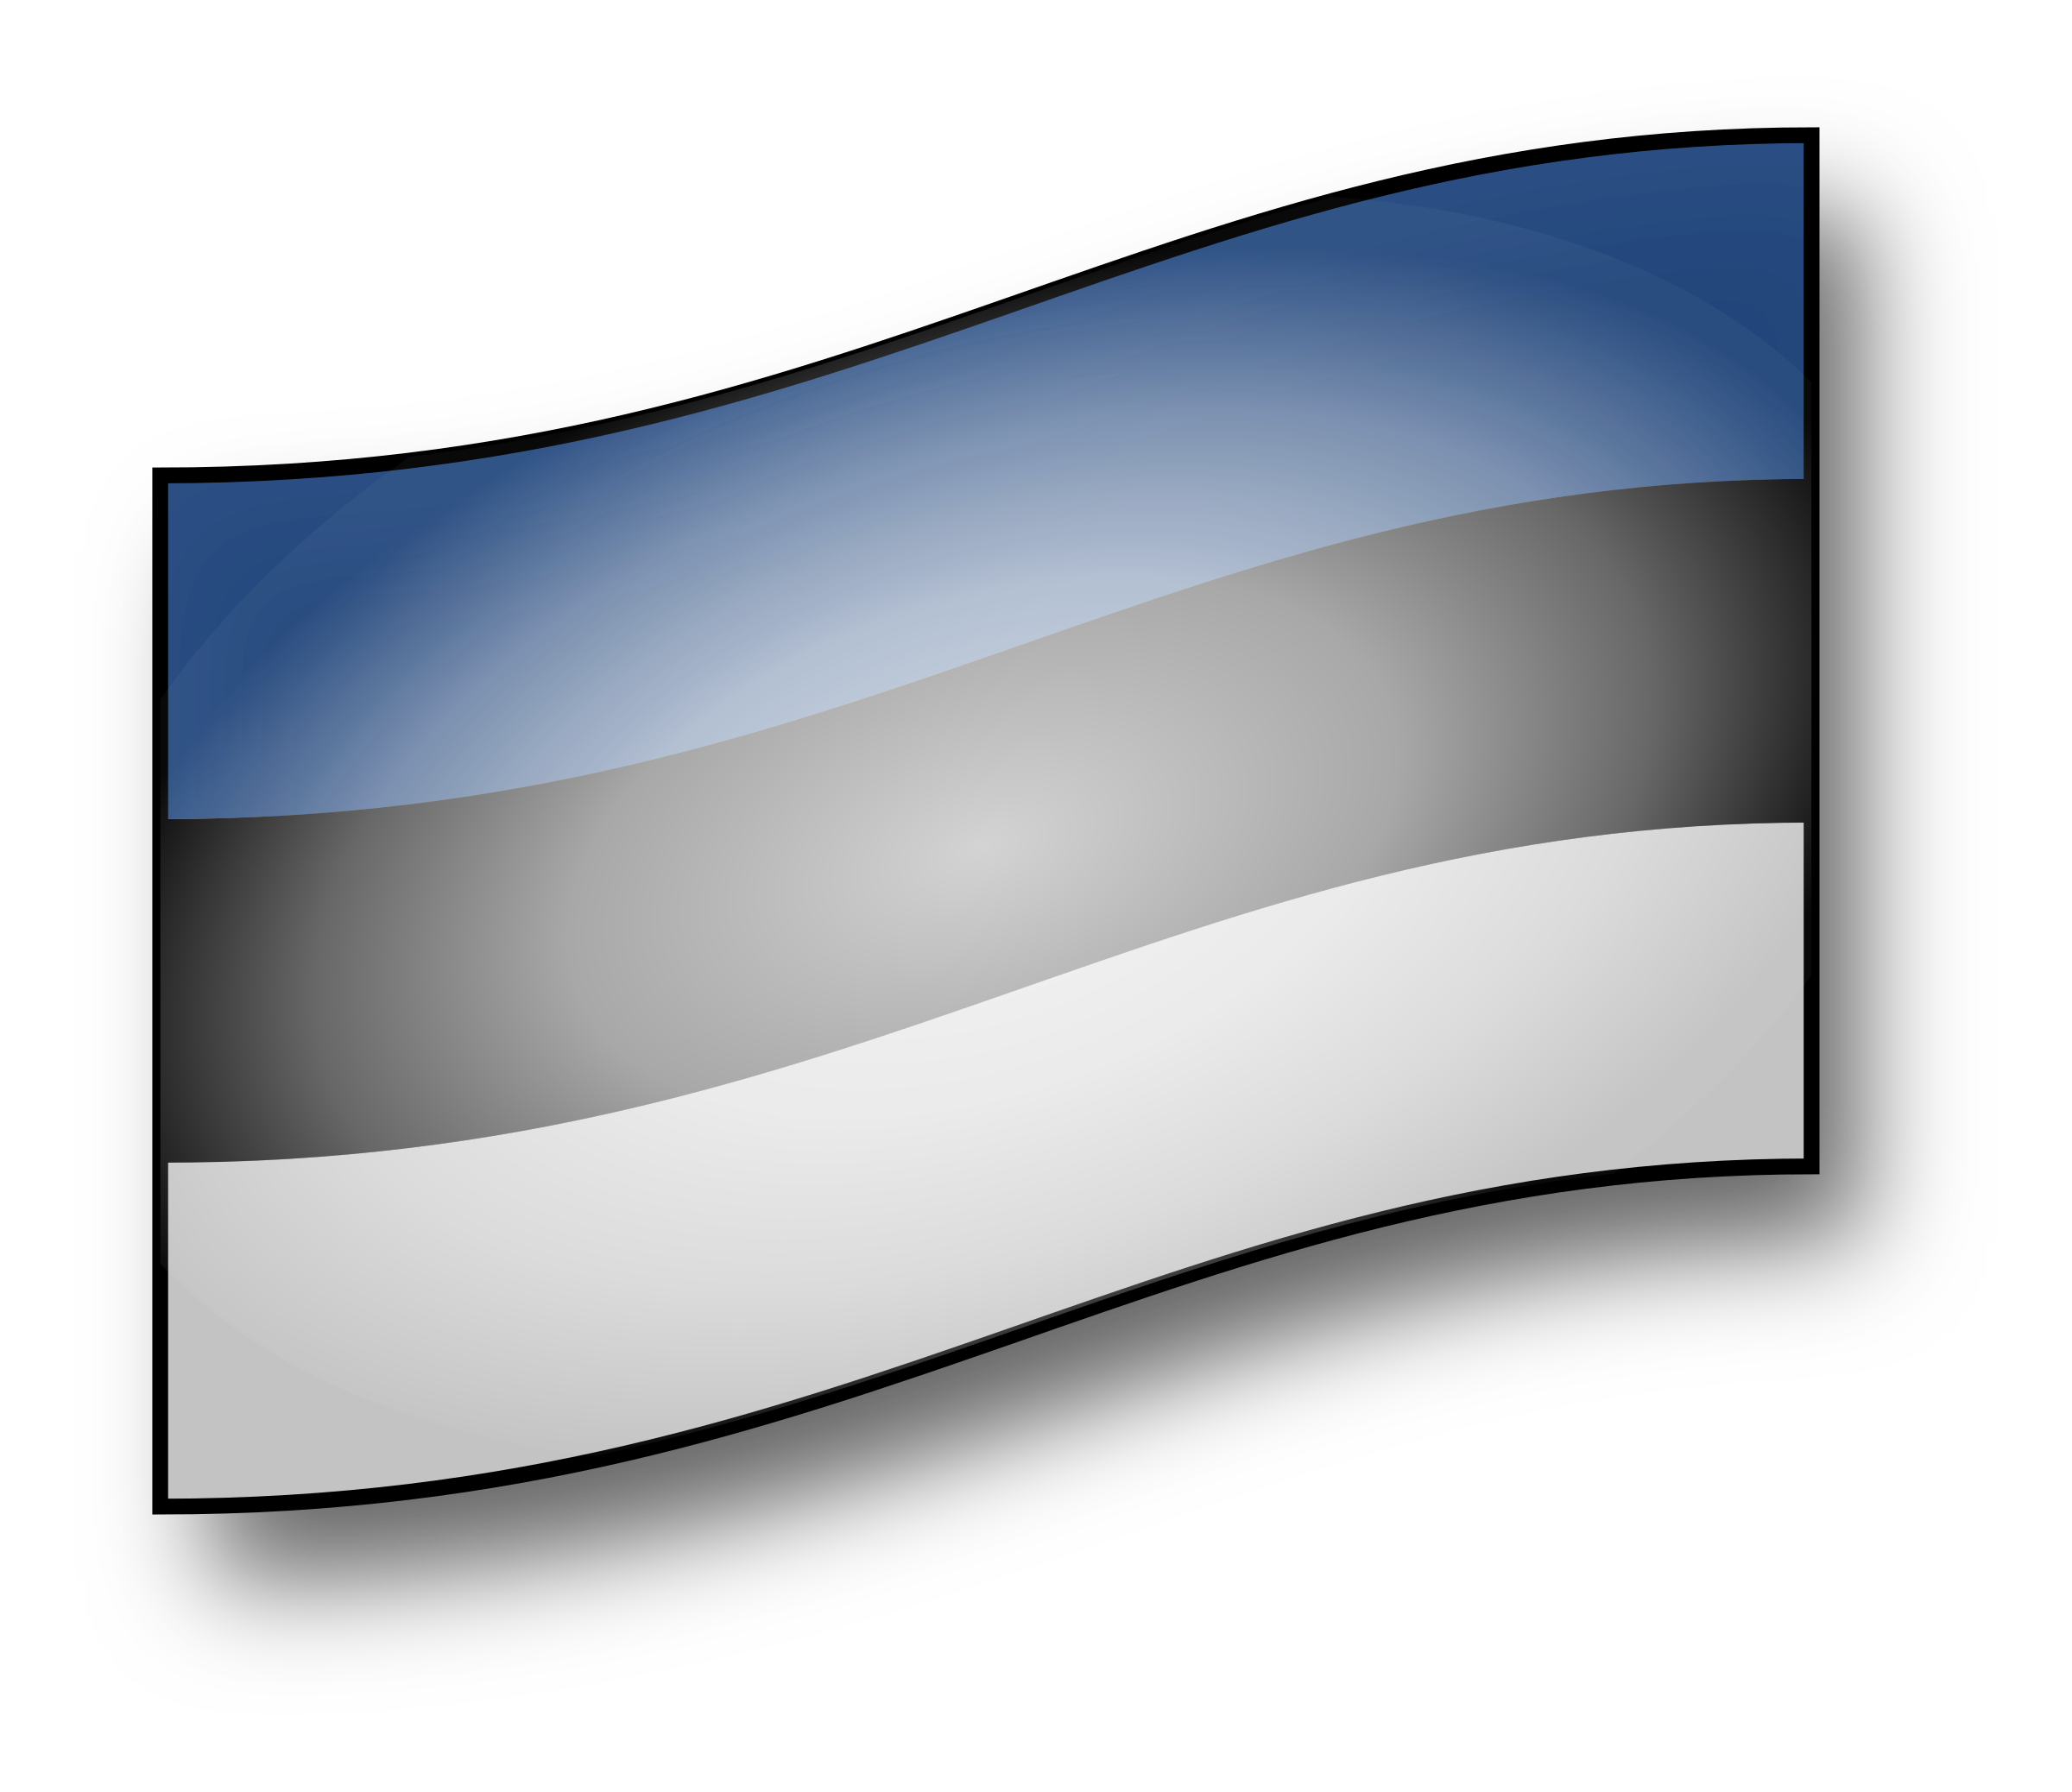 clickable Estonia flag by GMcGlinn